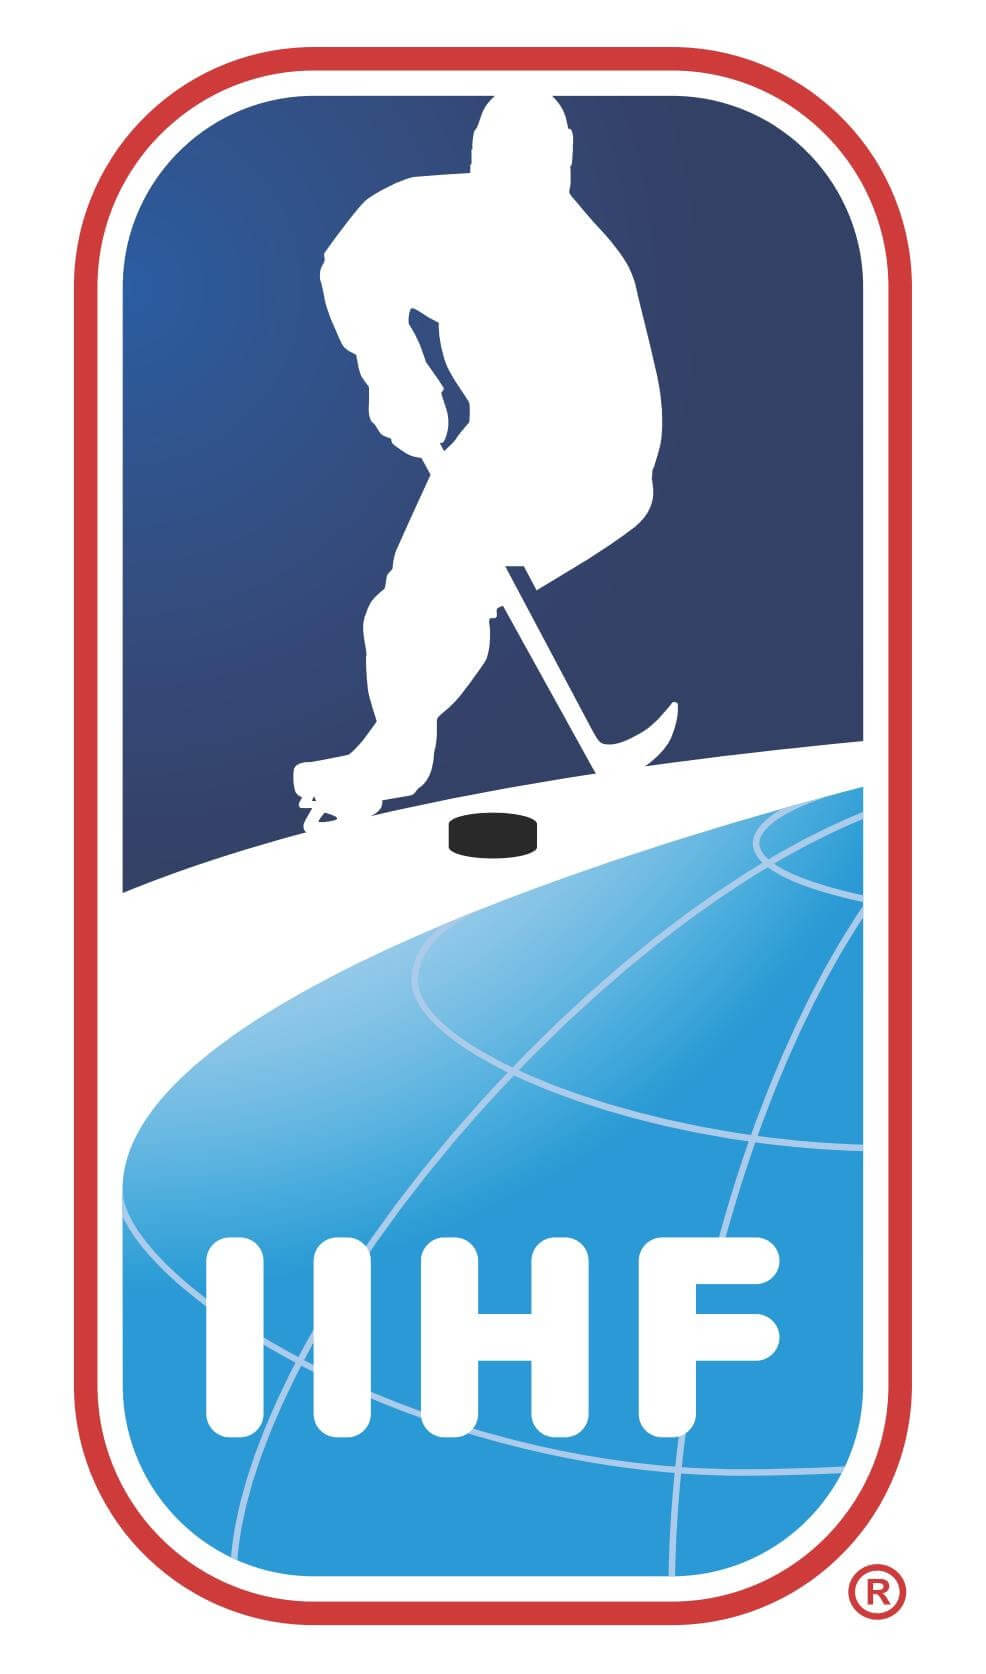 IIHF International Ice Hockey Federation logo